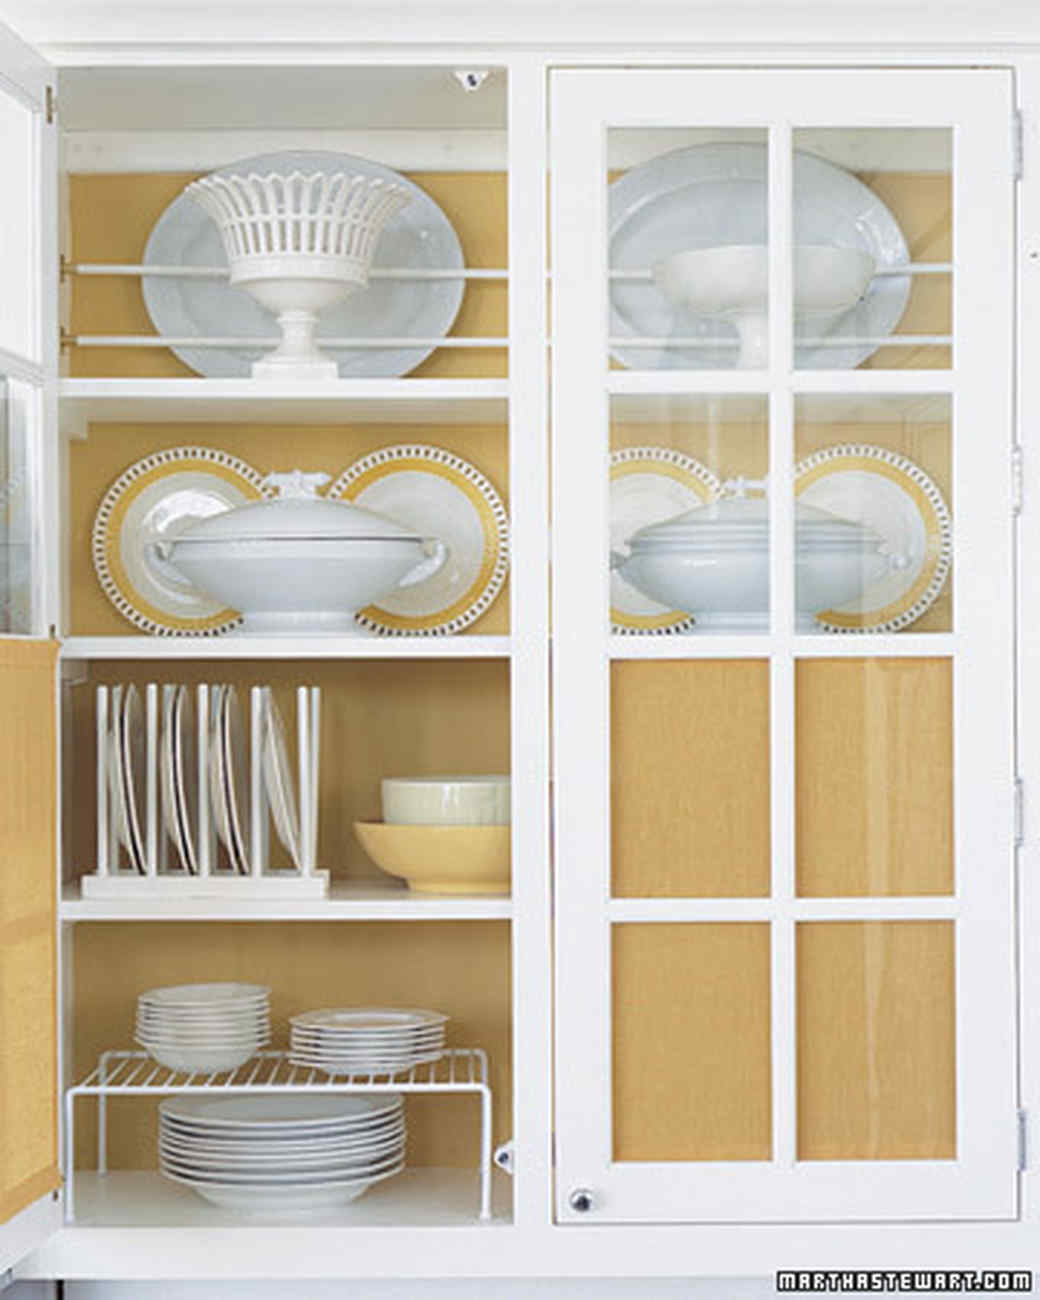 Kitchen Pantry Cabinet Organization Ideas Plate Rack Shelf: Small Kitchen Storage Ideas For A More Efficient Space